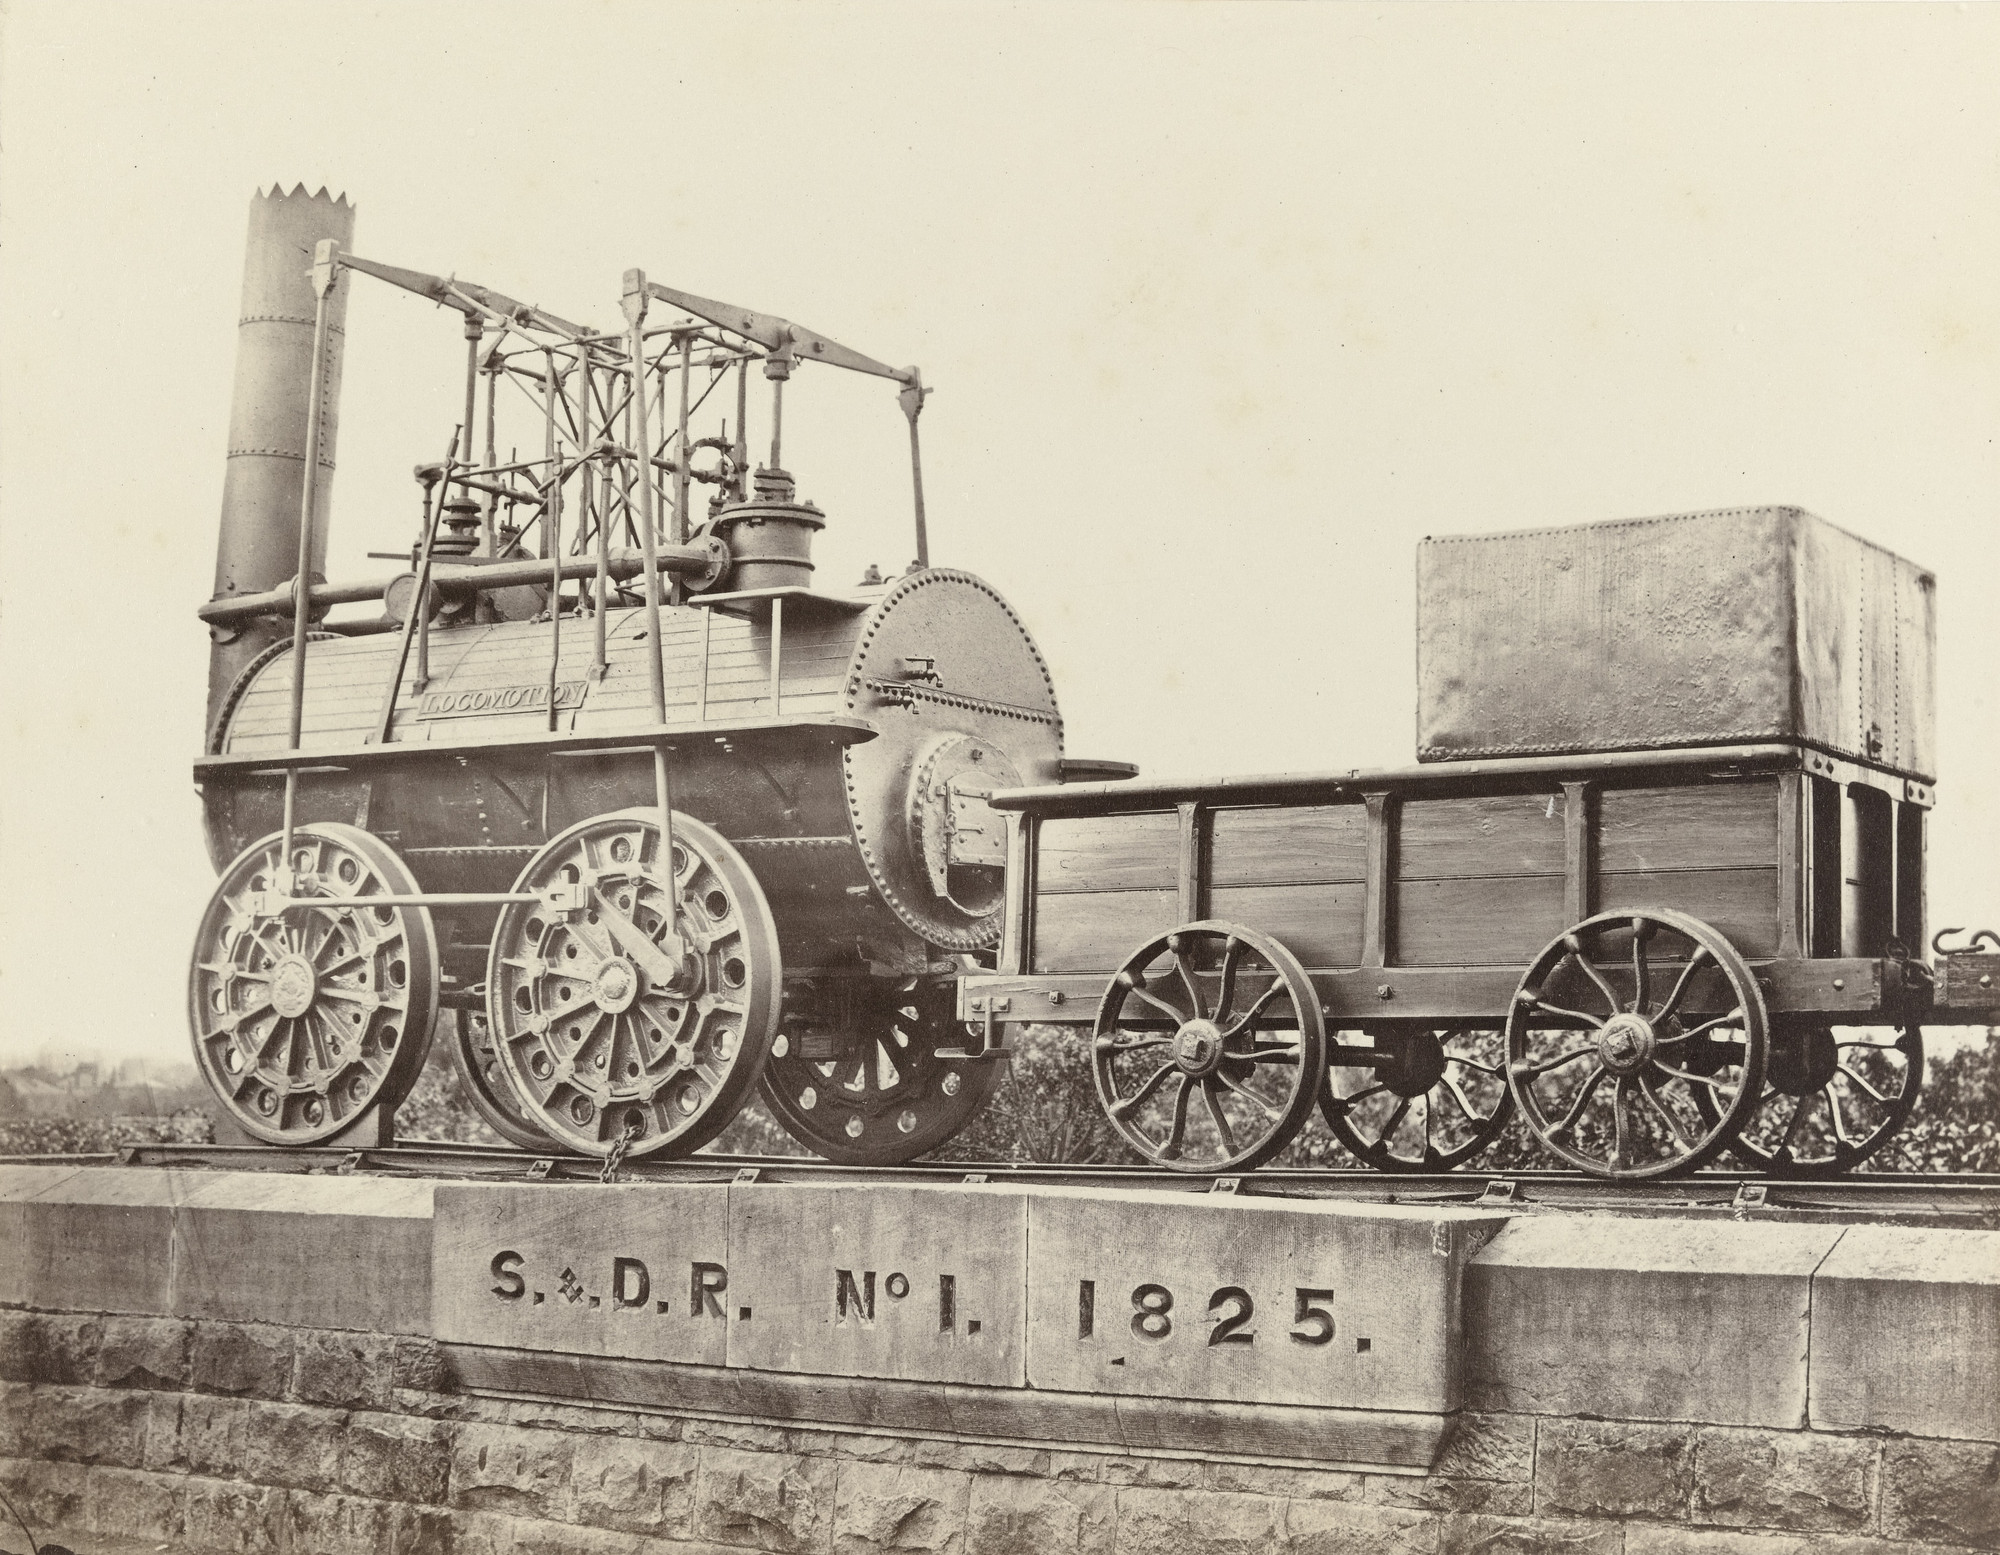 Francis Frith. No. 1 Locomotive and Tender, Darlington Railway Station. c. 1860